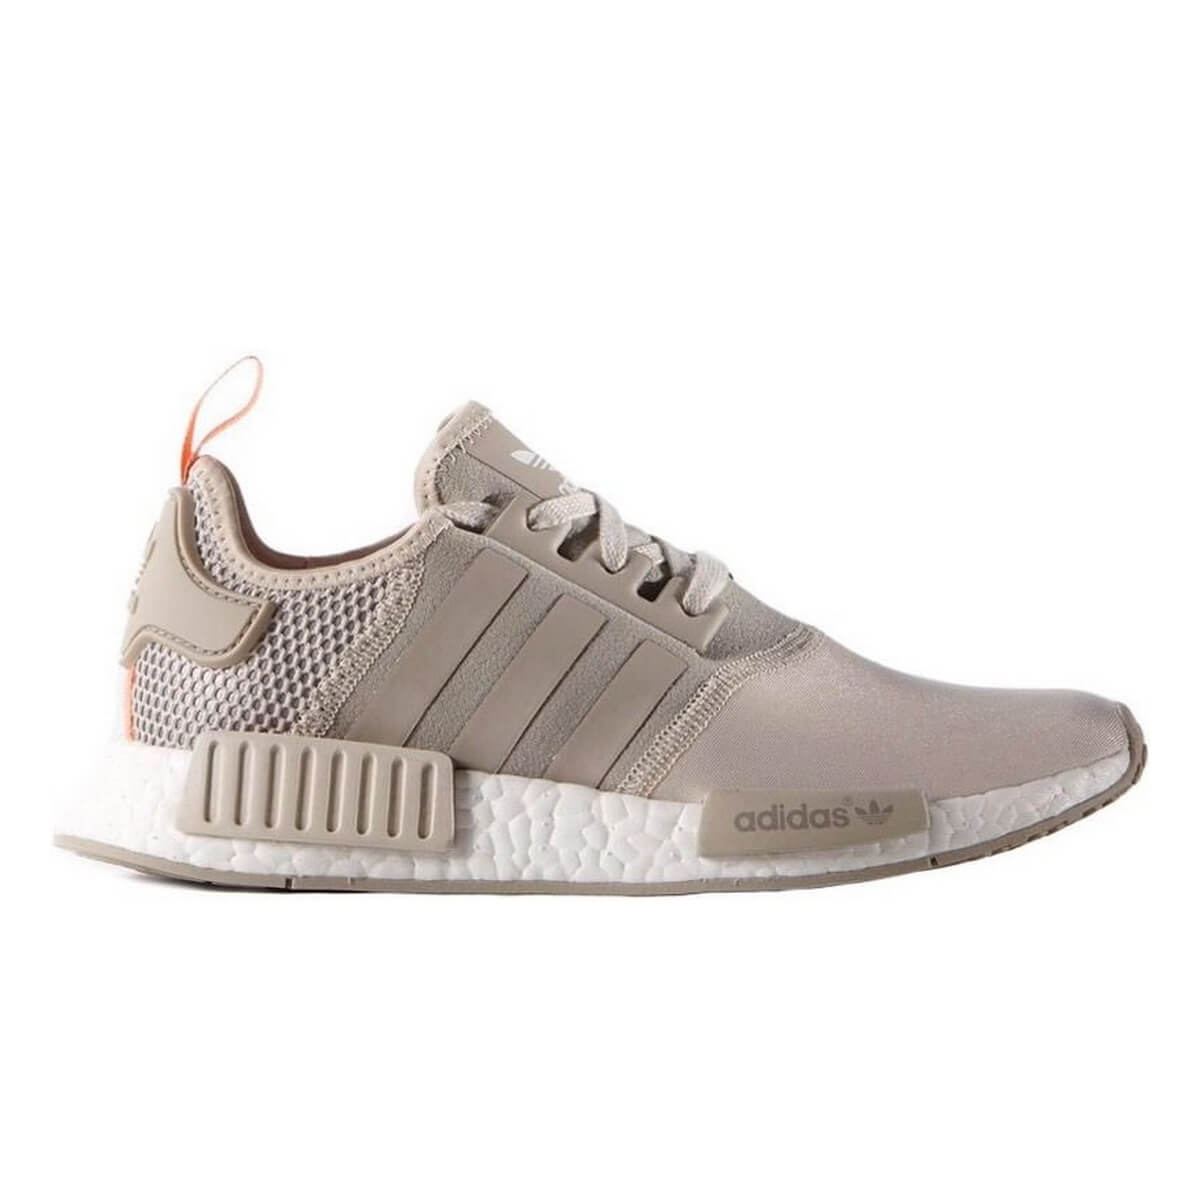 buy popular 6ffea 66cc9 Adidas NMD R1 W Clear Brown Tan Beige S75233